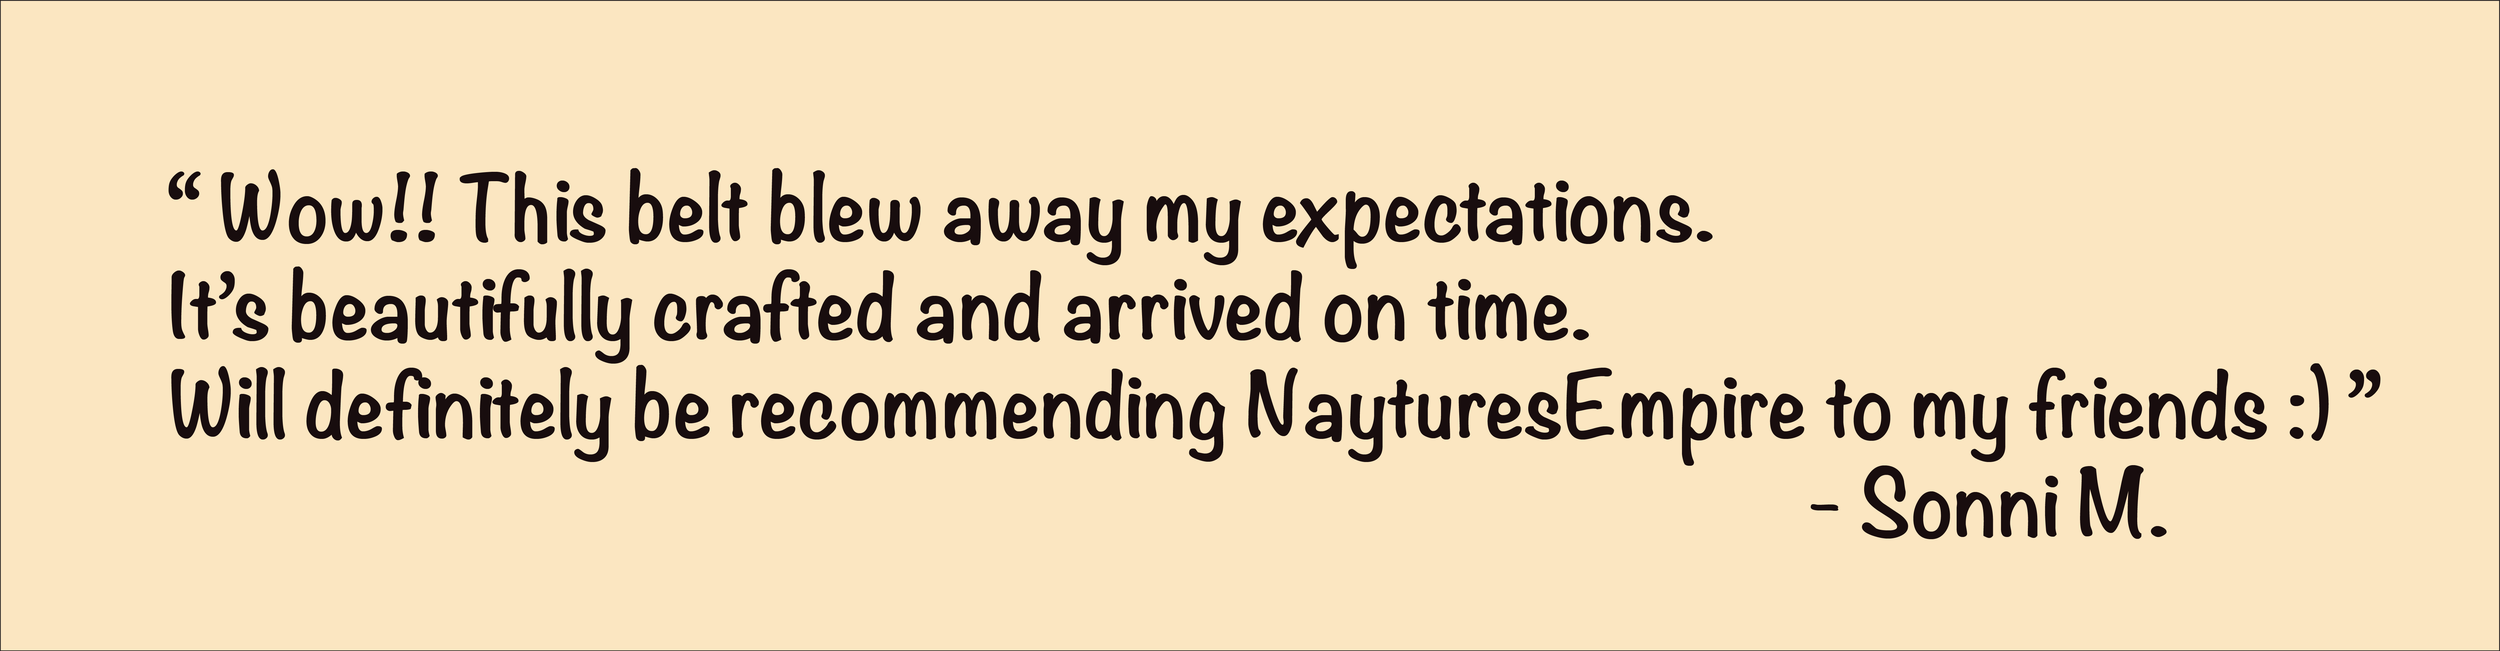 Testimonial Banners-04.png